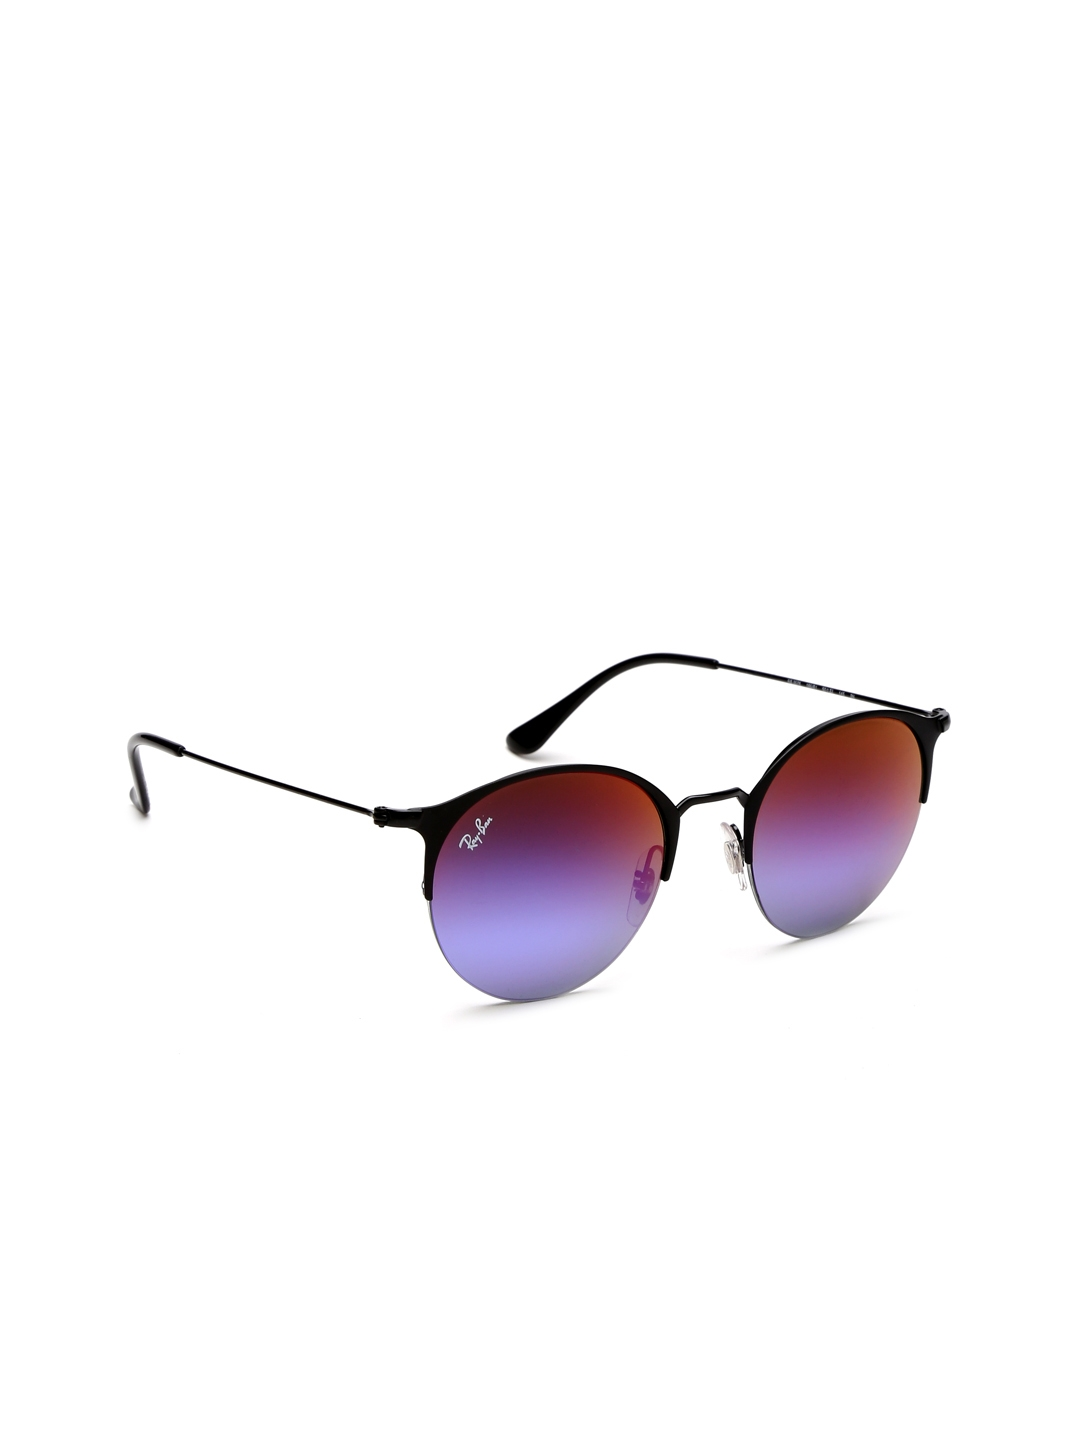 06a3dc60567 Buy Ray Ban Unisex Round Sunglasses - Sunglasses for Unisex 2009785 ...